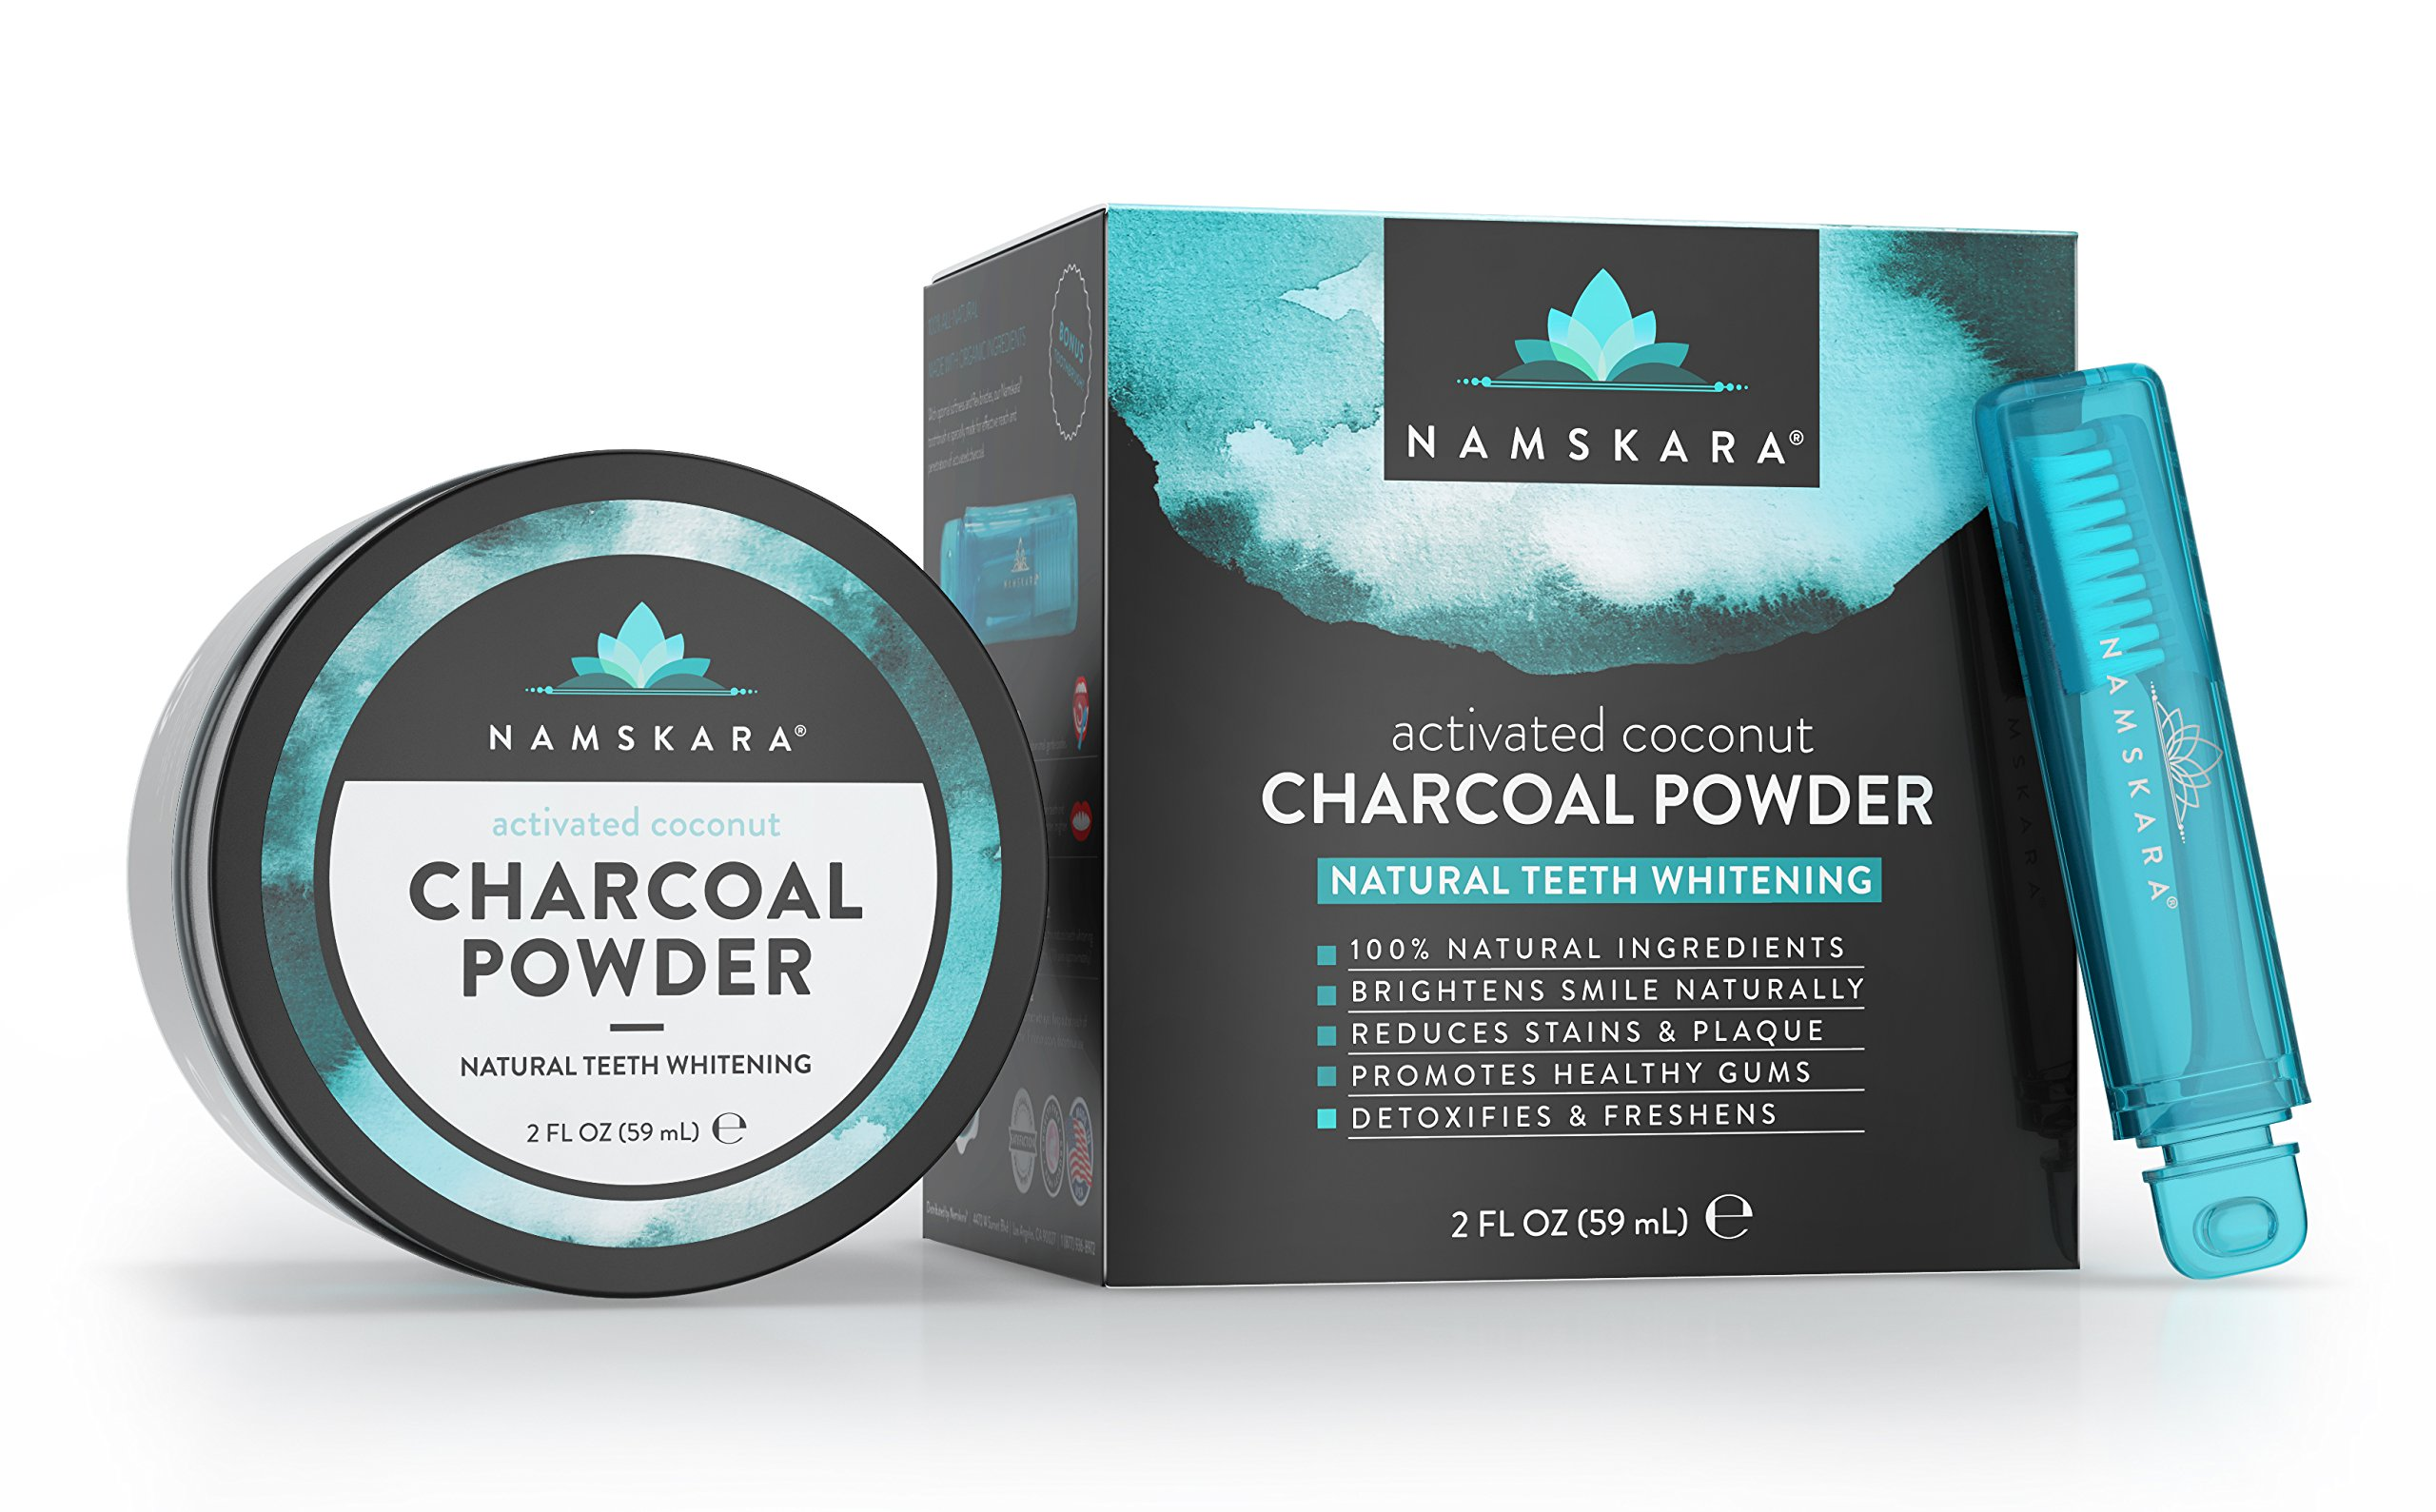 Namskara Activated Coconut Charcoal Natural Teeth Whitening Powder and Tooth Polish made with 100% Natural and Organic Ingredients - Best Natural Teeth Whitening and Teeth Stain Remover